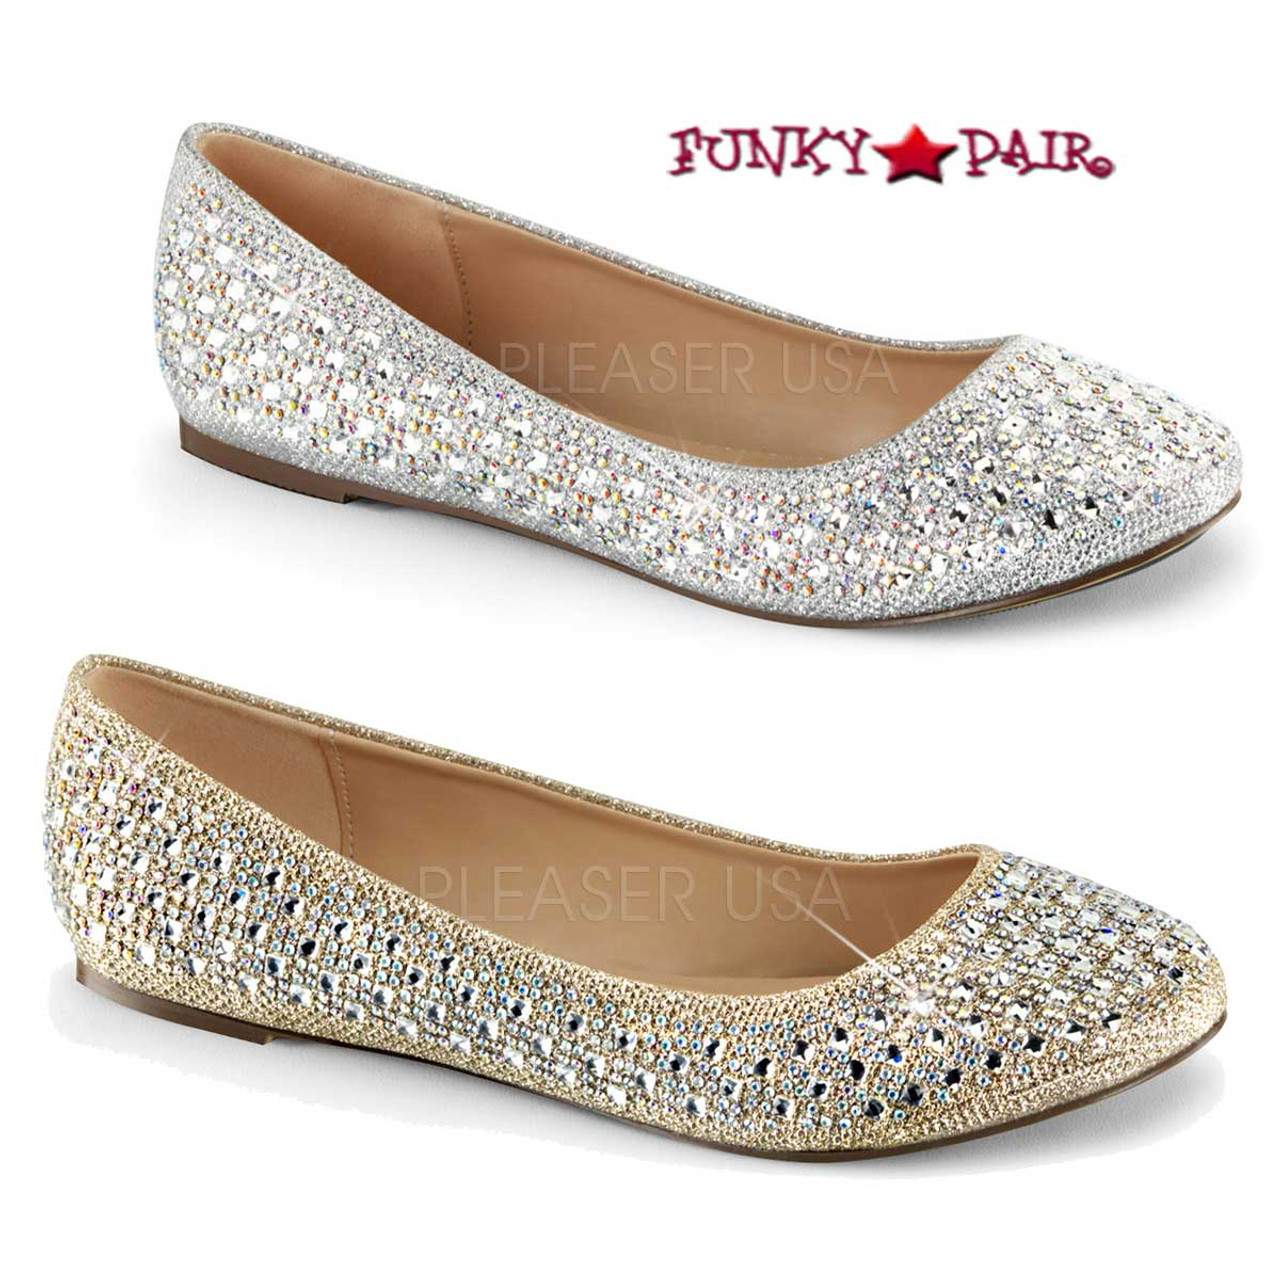 Mila Adult Flats With Bow Black Glitter Womens Shoes